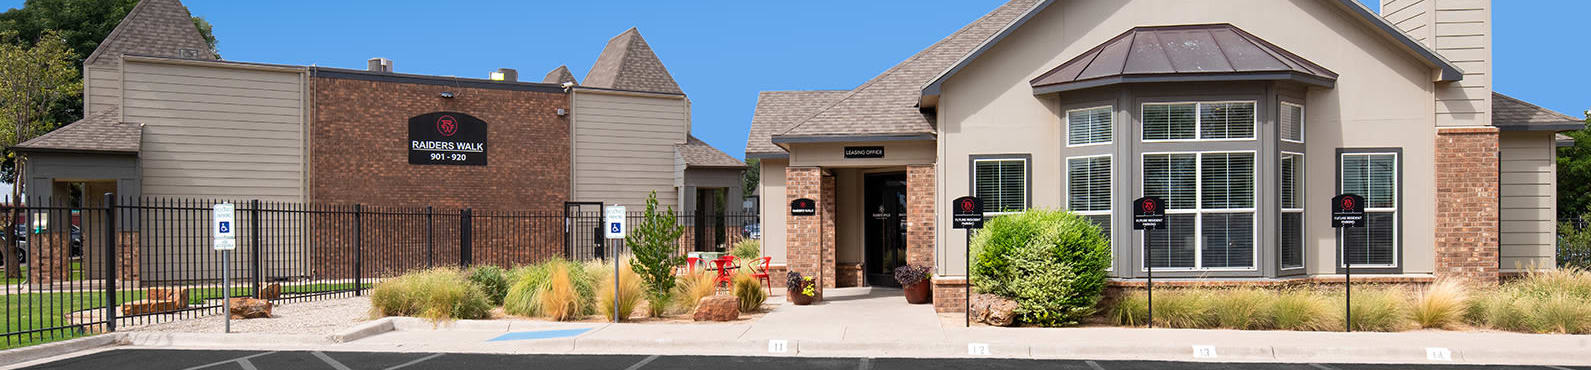 Schedule a tour at Raiders Walk Apartments